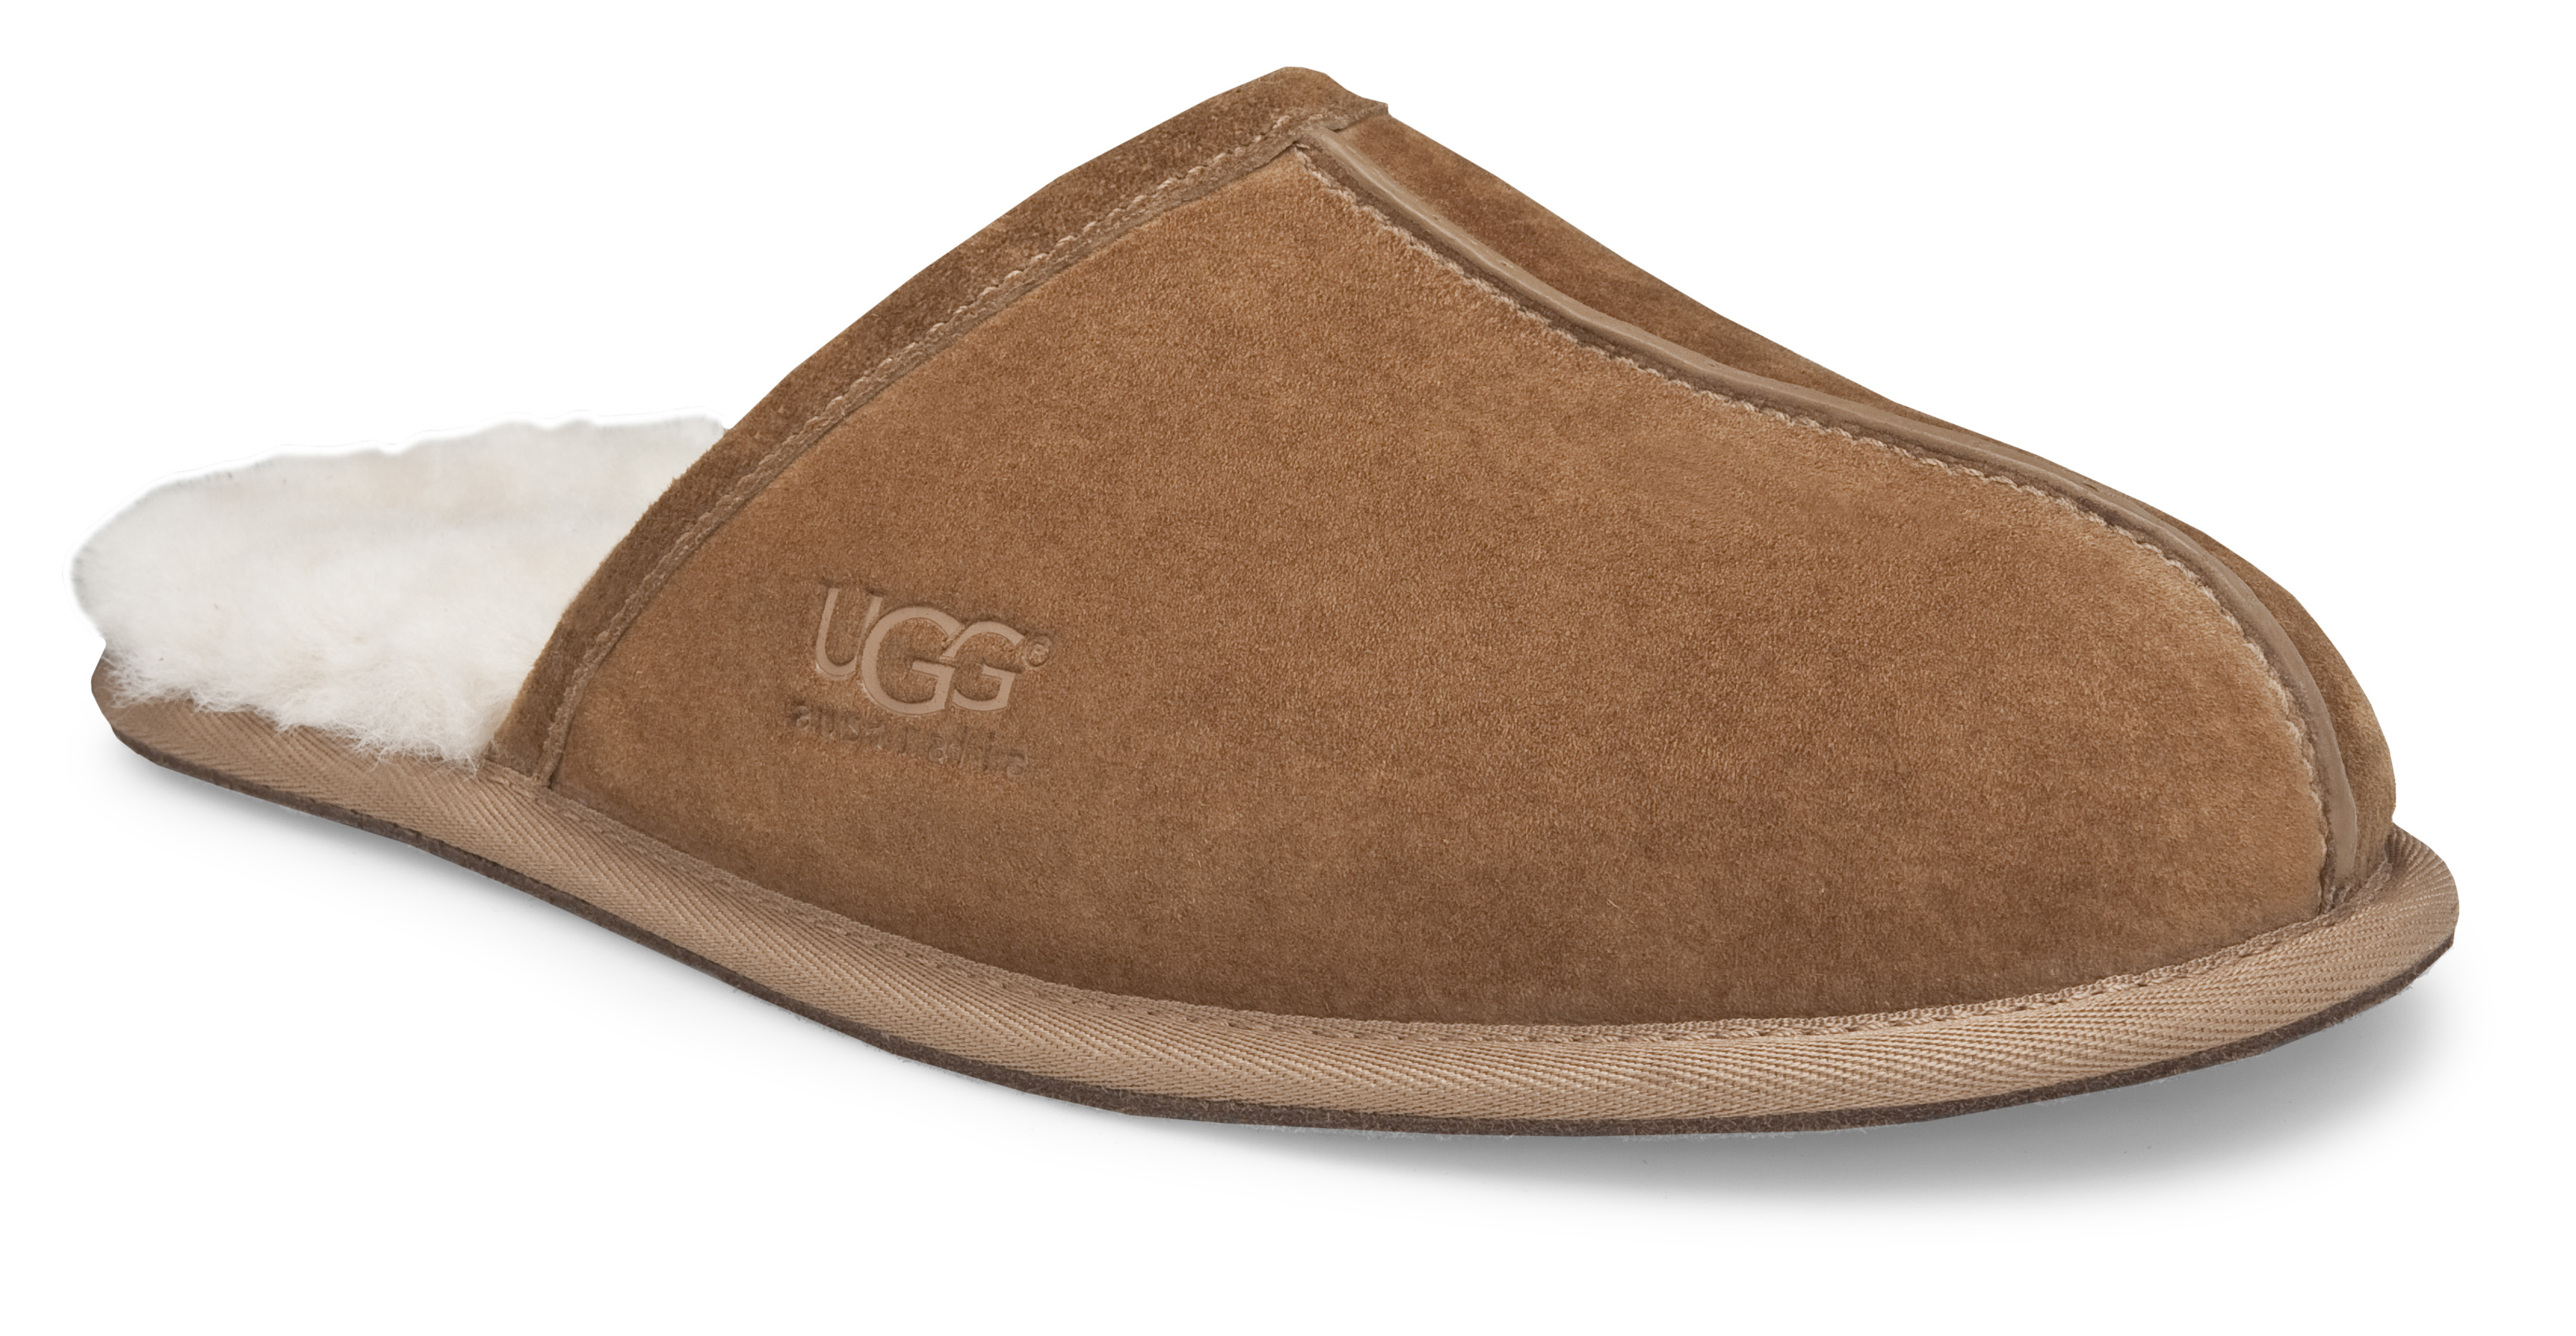 Mens Ugg Slippers Sale Size 11